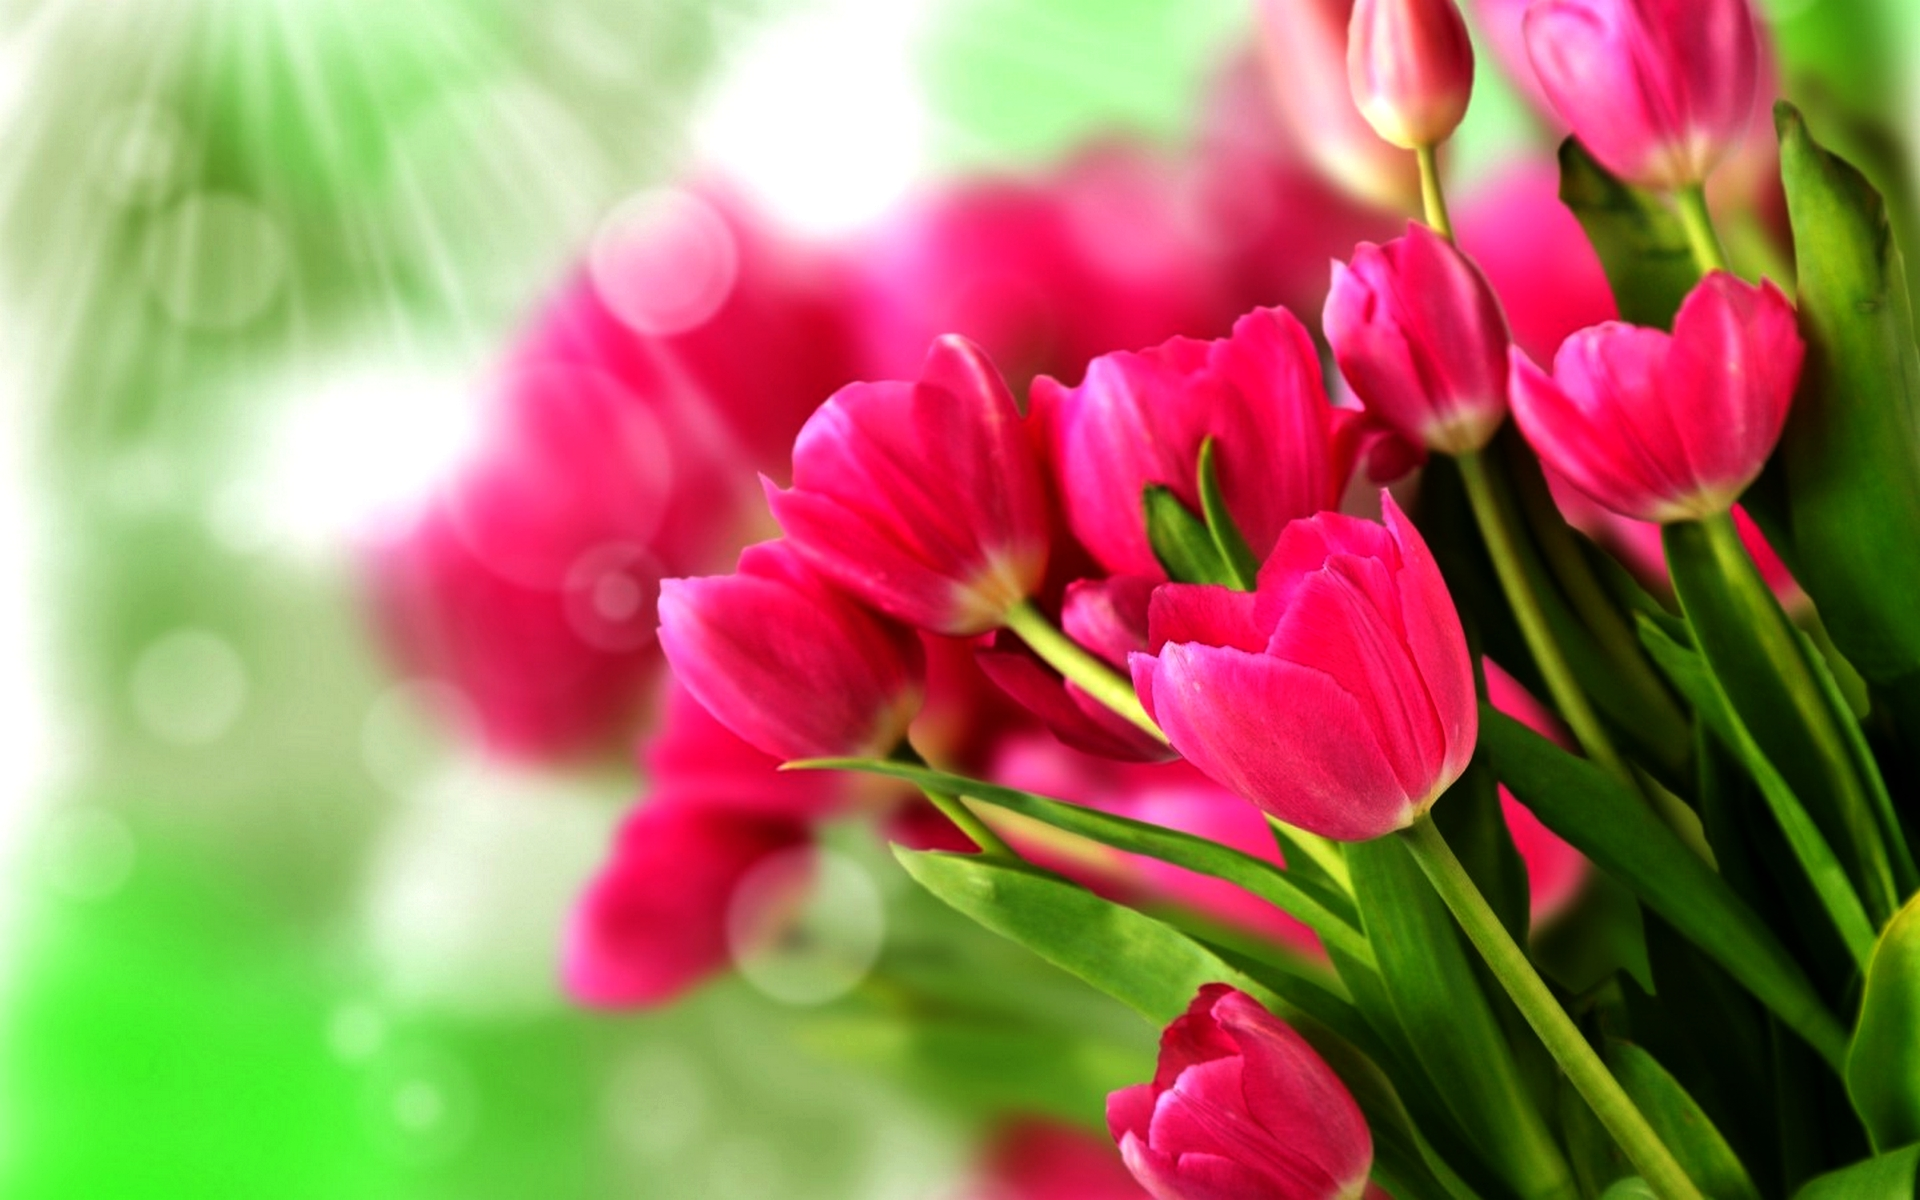 Flowers Images Tulips HD Wallpaper And Background Photos